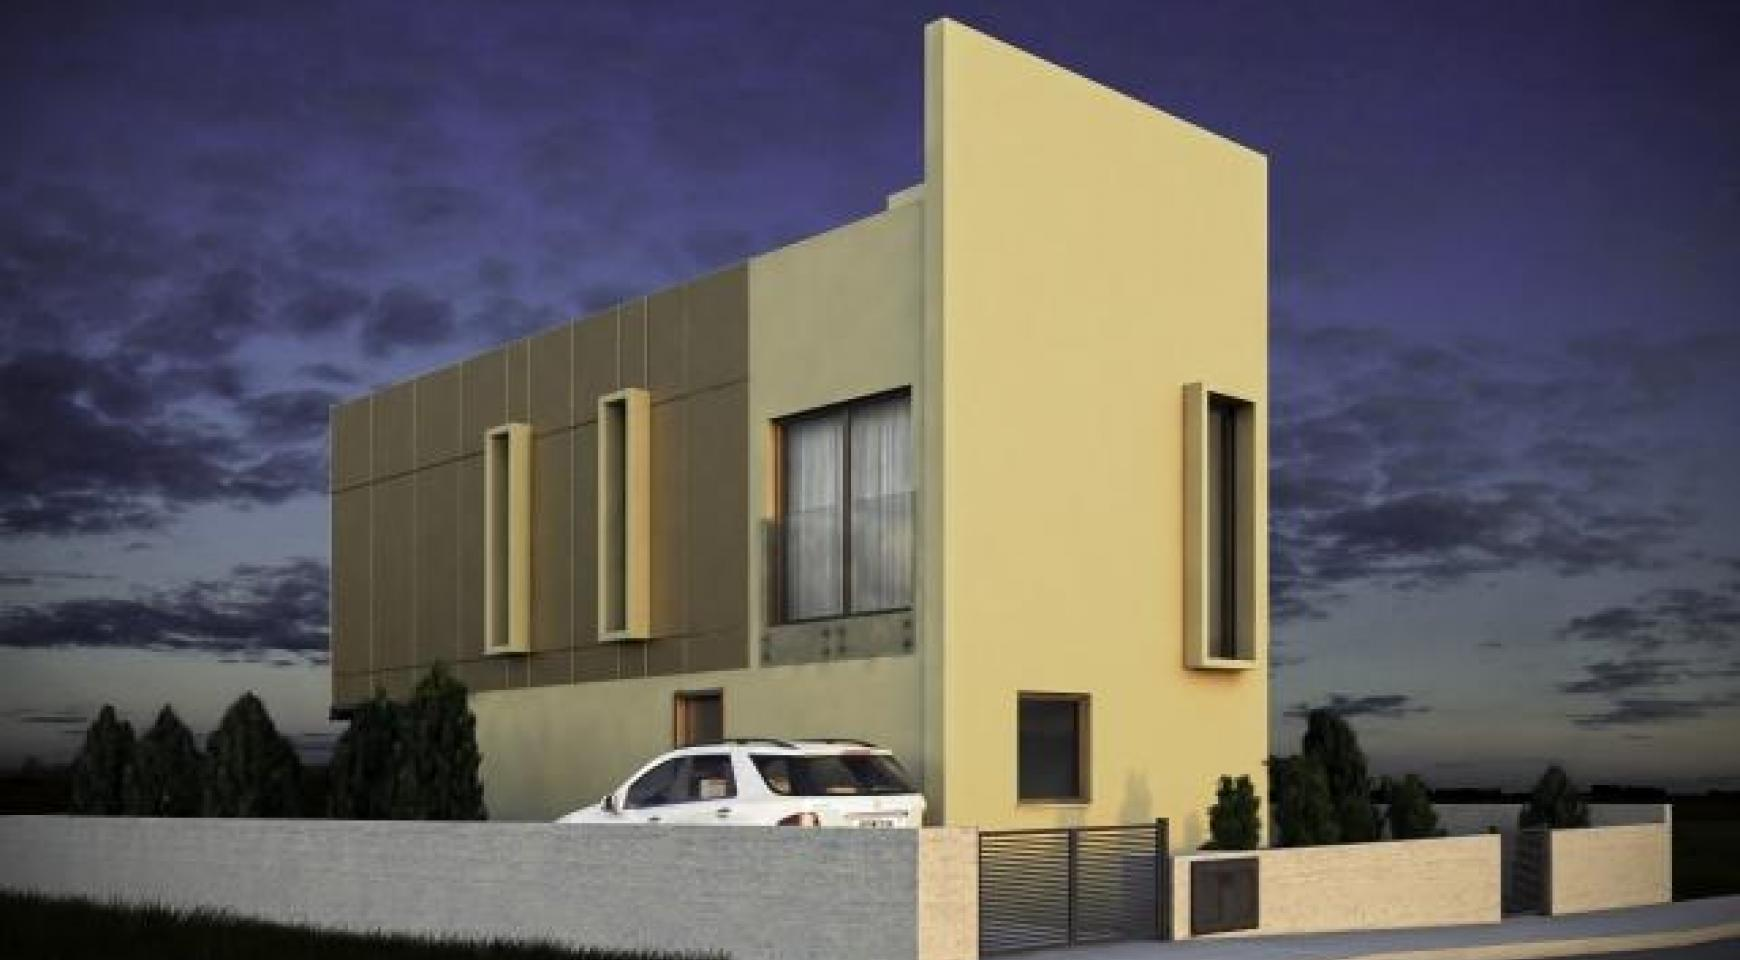 New Contemporary 3 Bedroom House in Central Location - 2